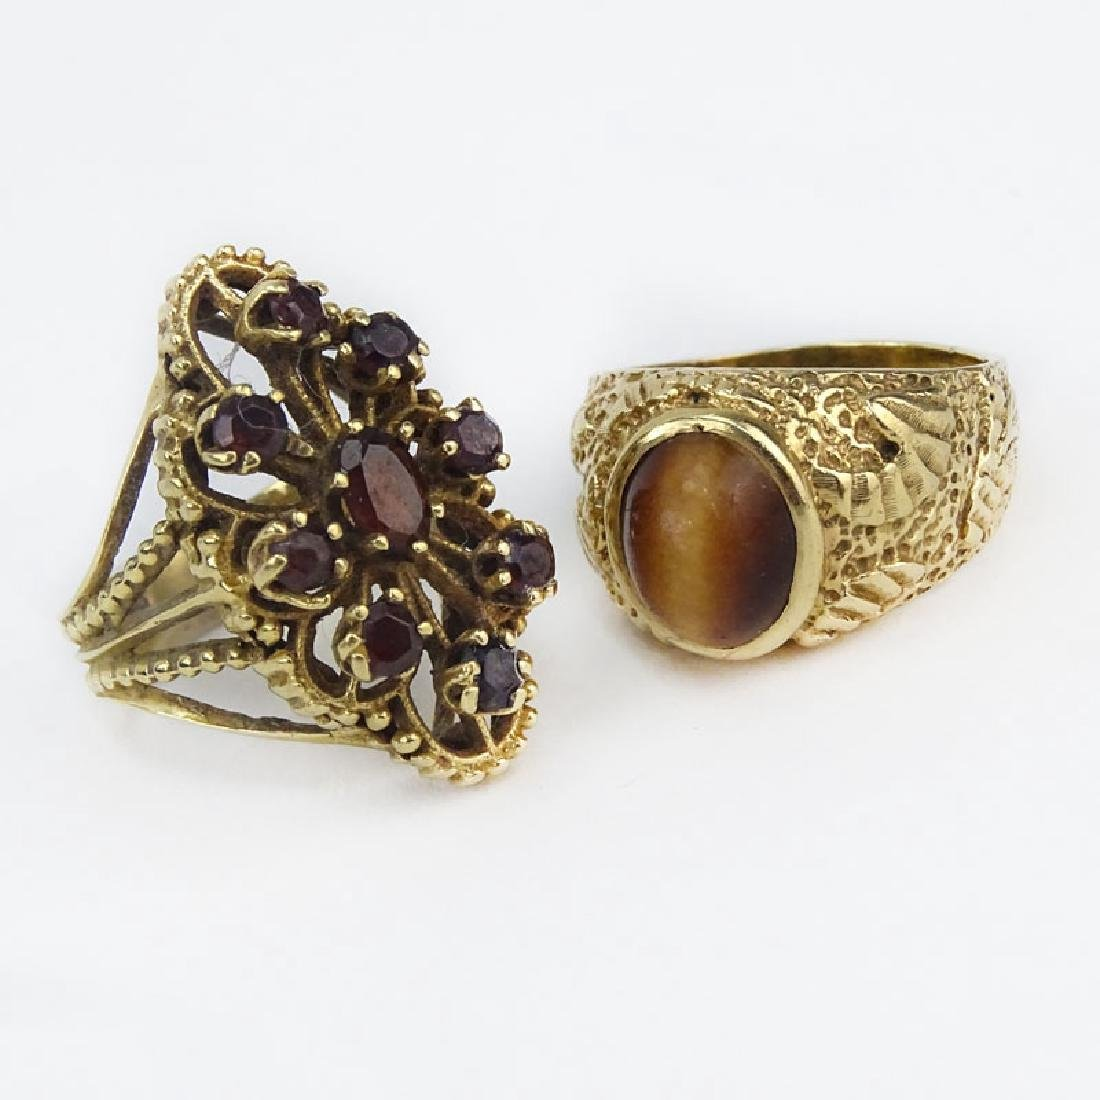 Vintage 14 Karat Yellow Gold and Cat's Eye together